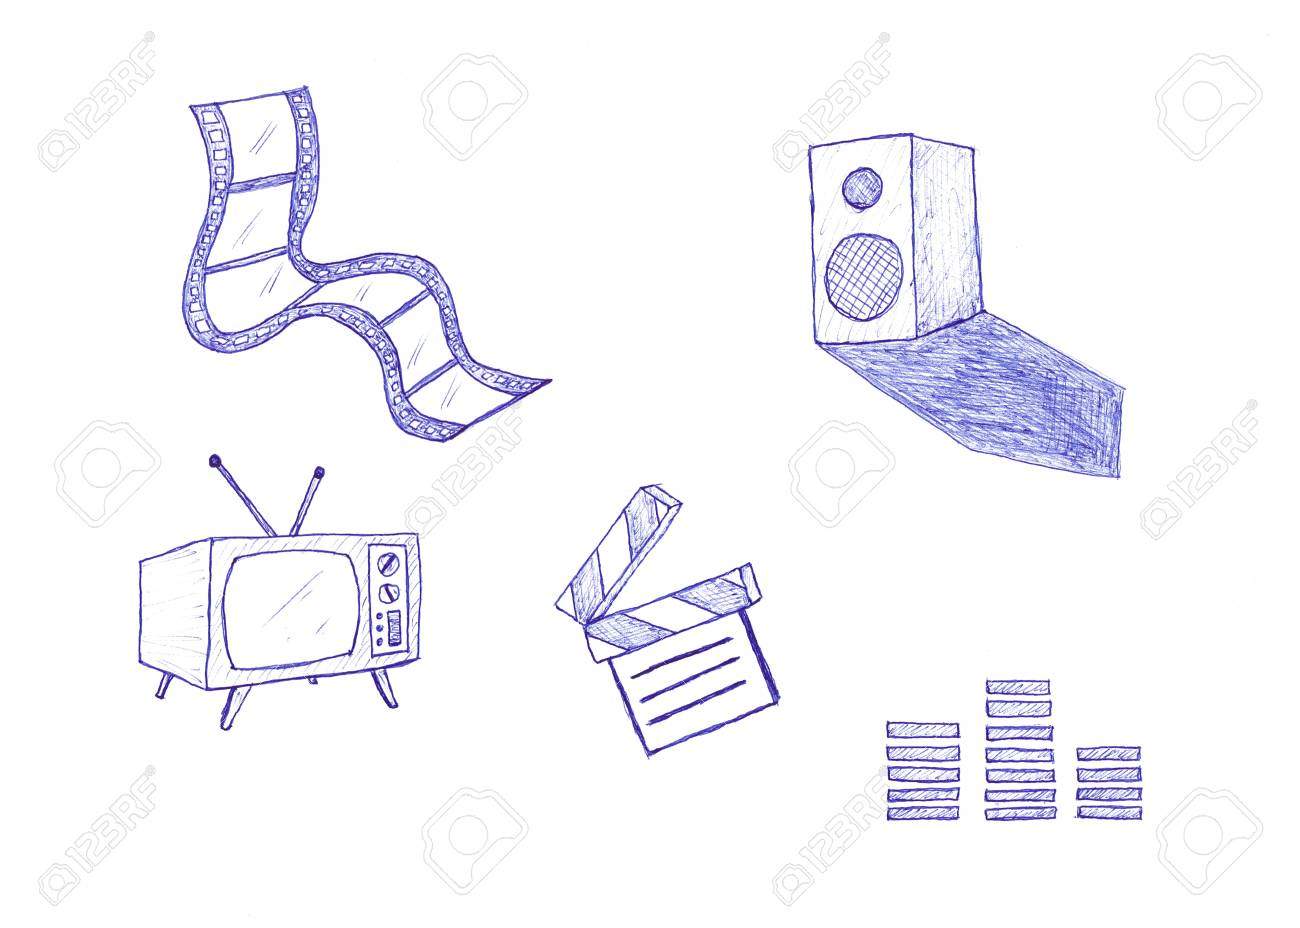 An illustrated set of icons related to films and movies, isolated on white background. Stock Photo - 4839290